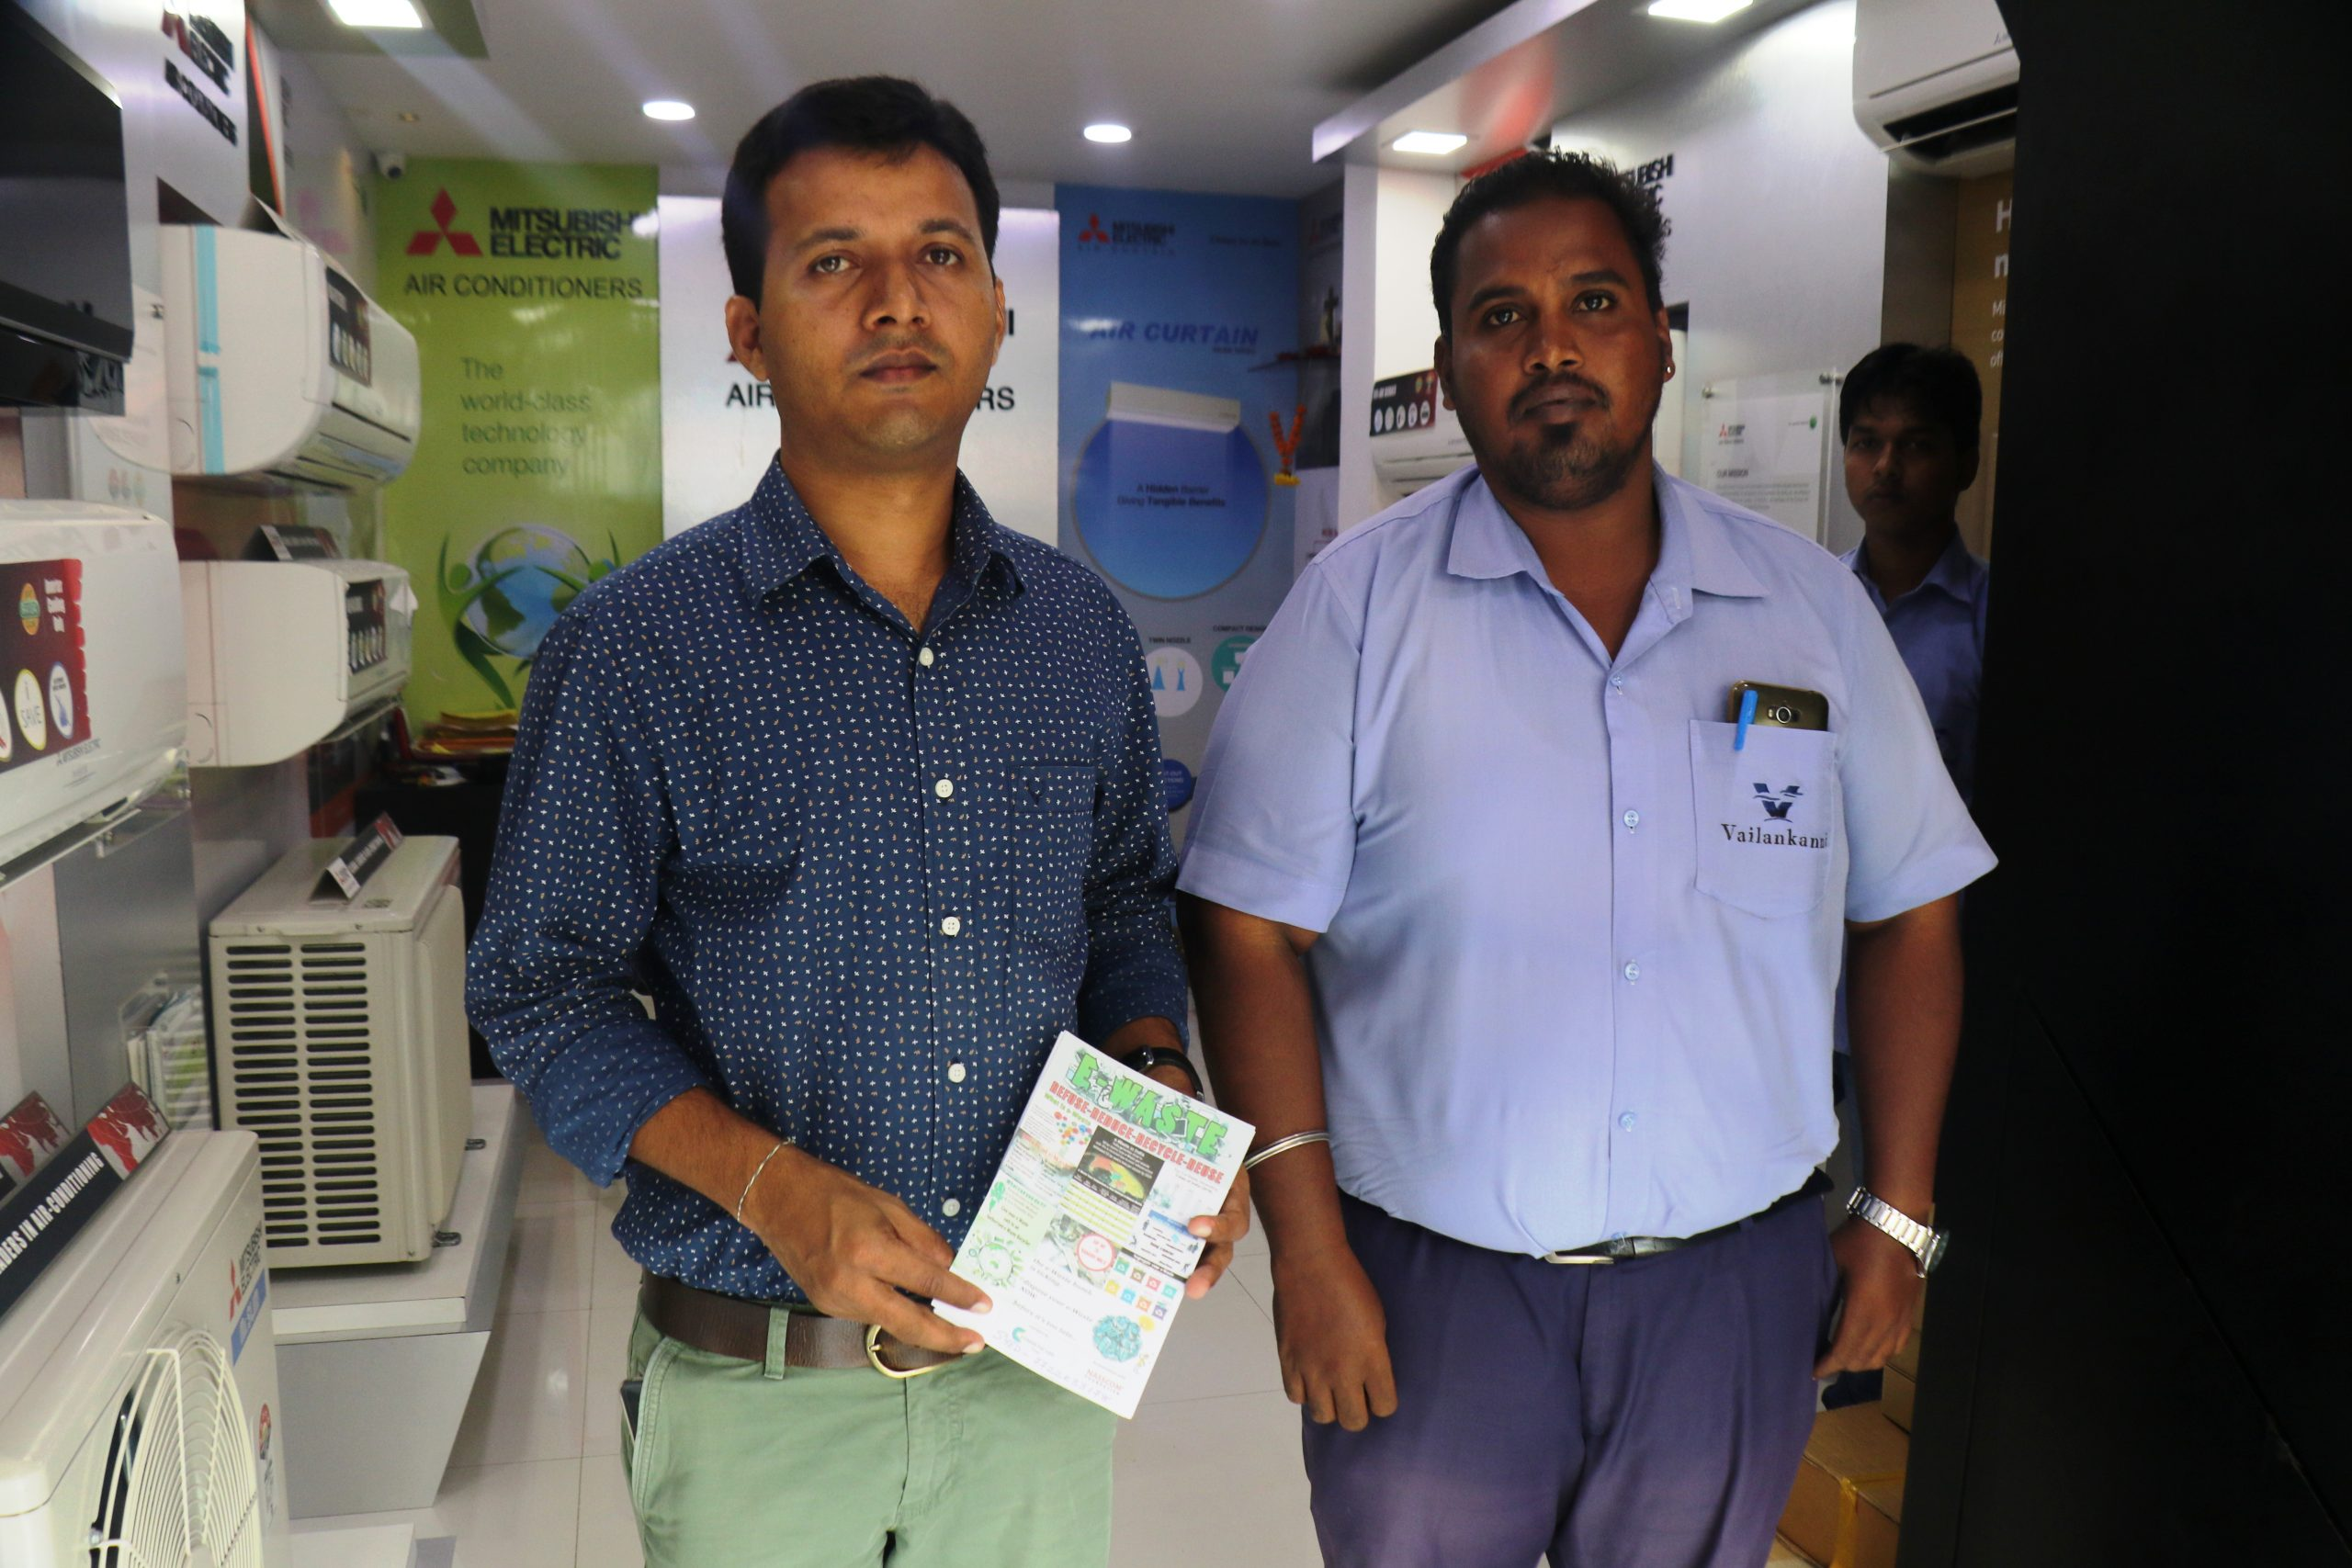 Vailankanni Ref and Air Conditioners (2)